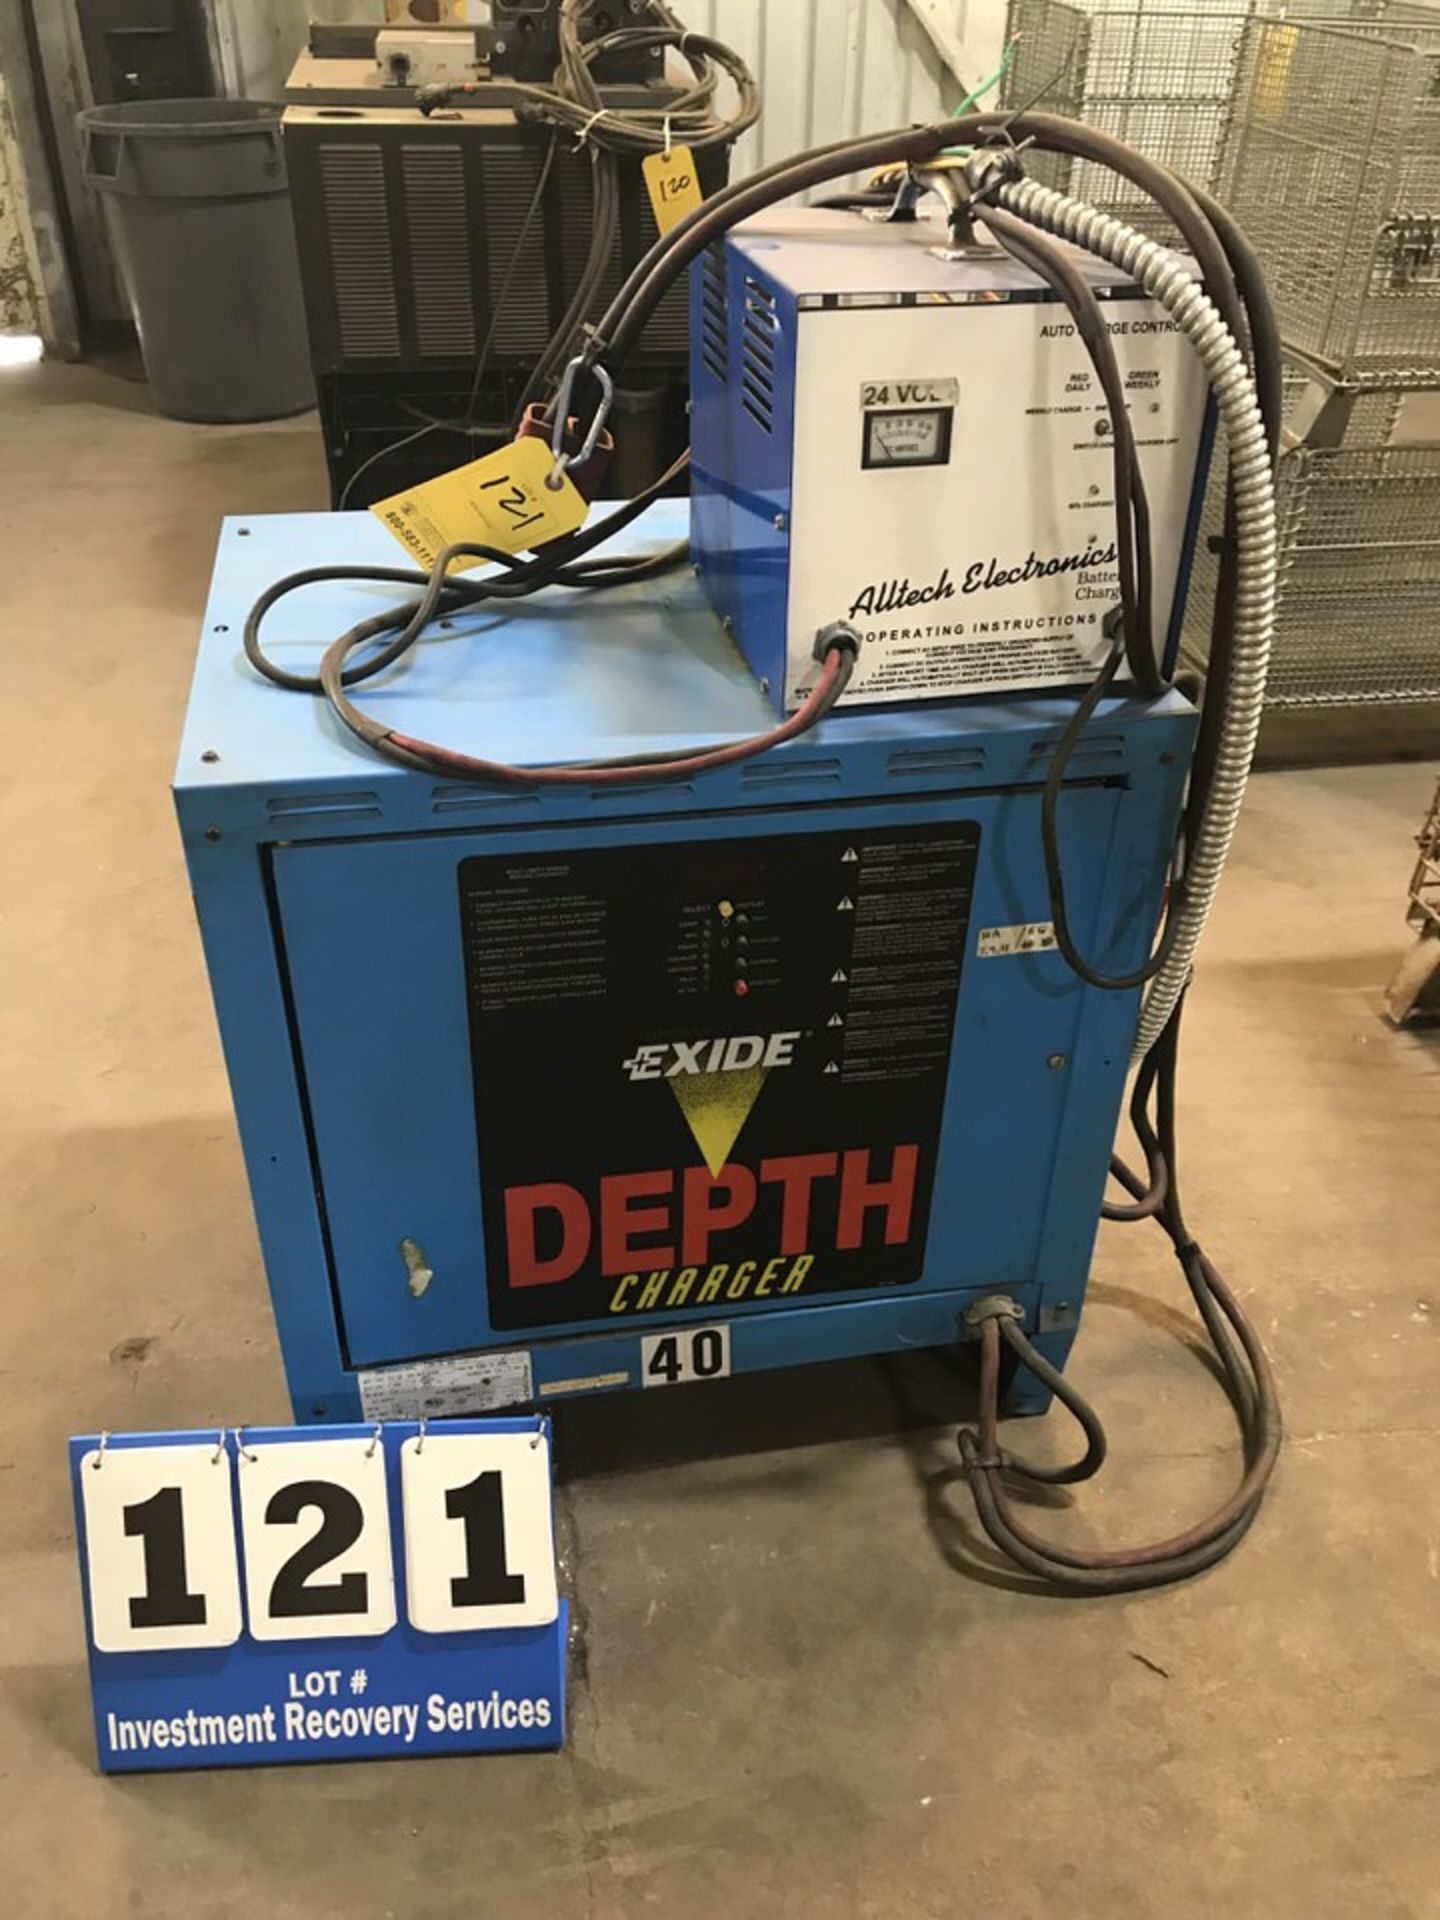 Lot 121 - Exude Depth Charge Charger Unit (LOCATION: 3421 N SYLVANIA, FT WORTH, TX, 76111)